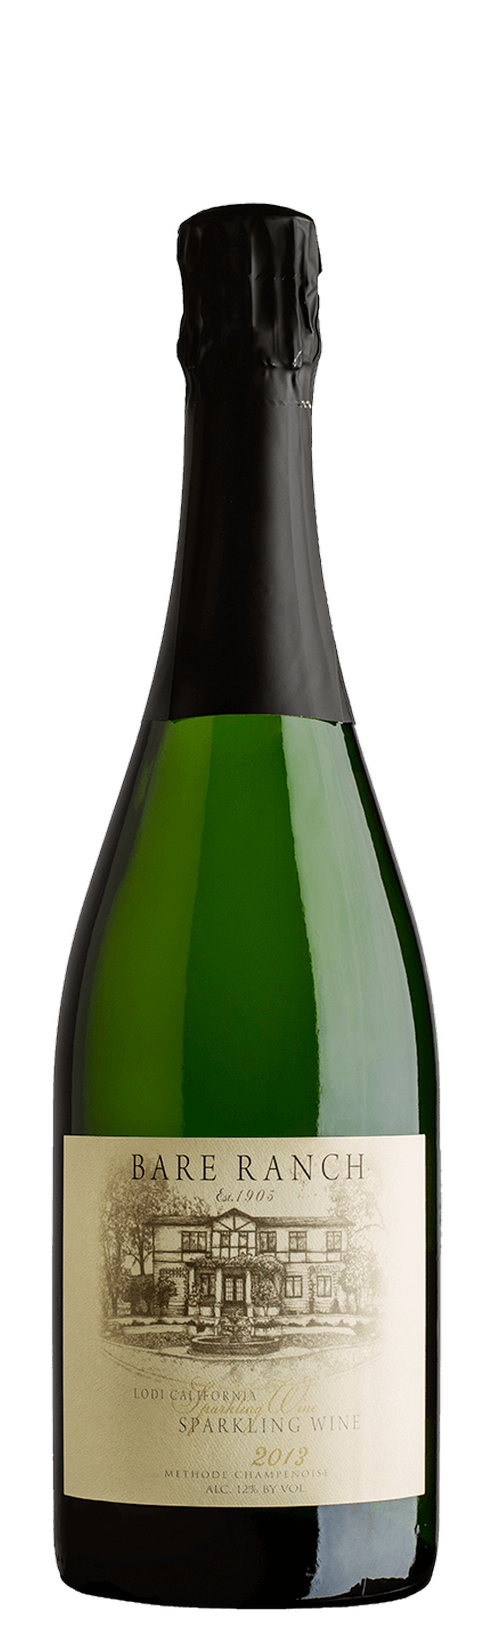 2016 Bare Ranch Sparkling